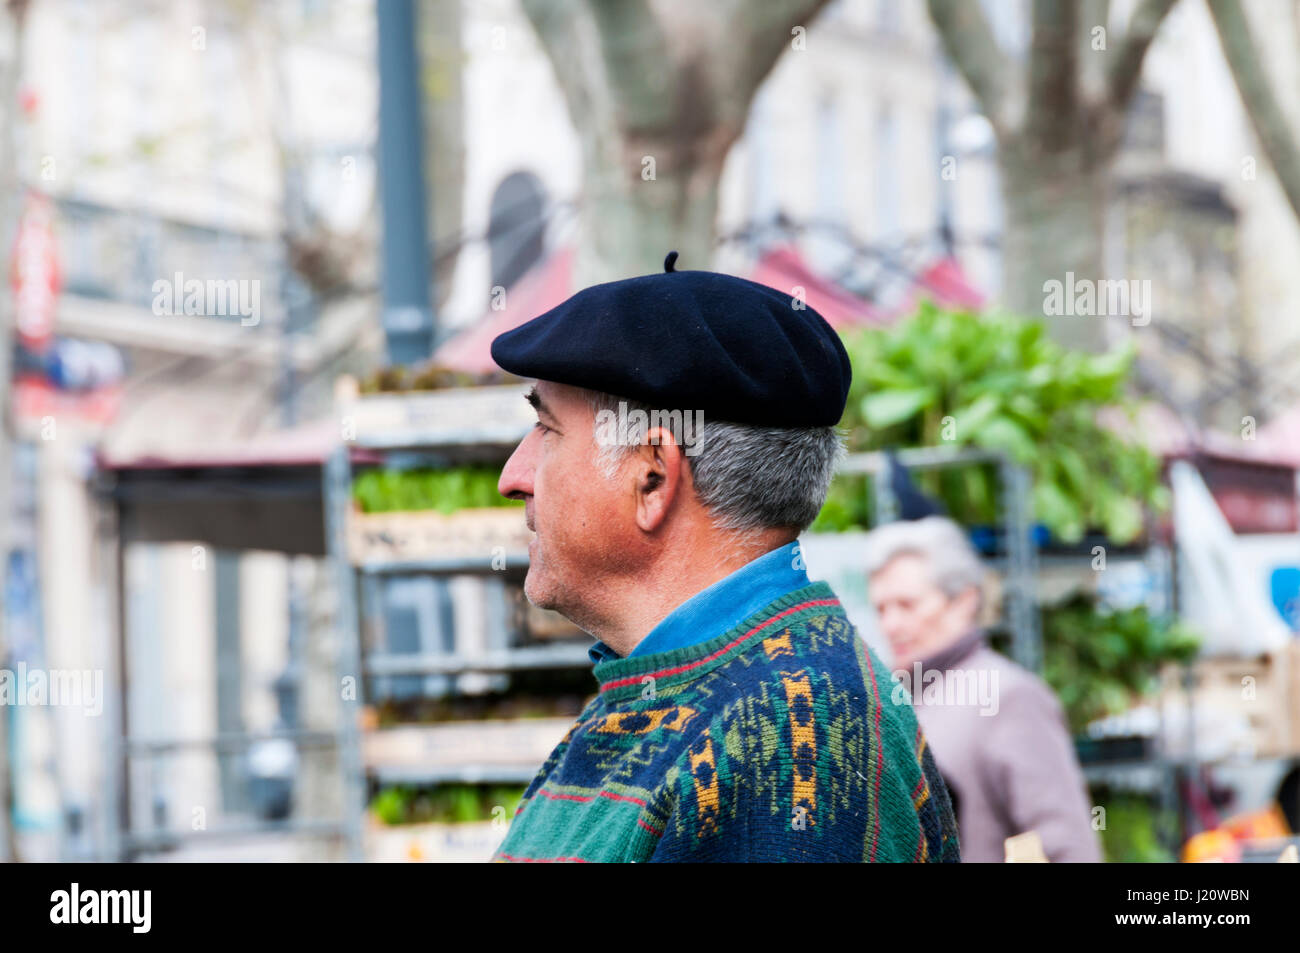 A Frenchman wearing a black beret in Beziers in Southern France. - Stock Image